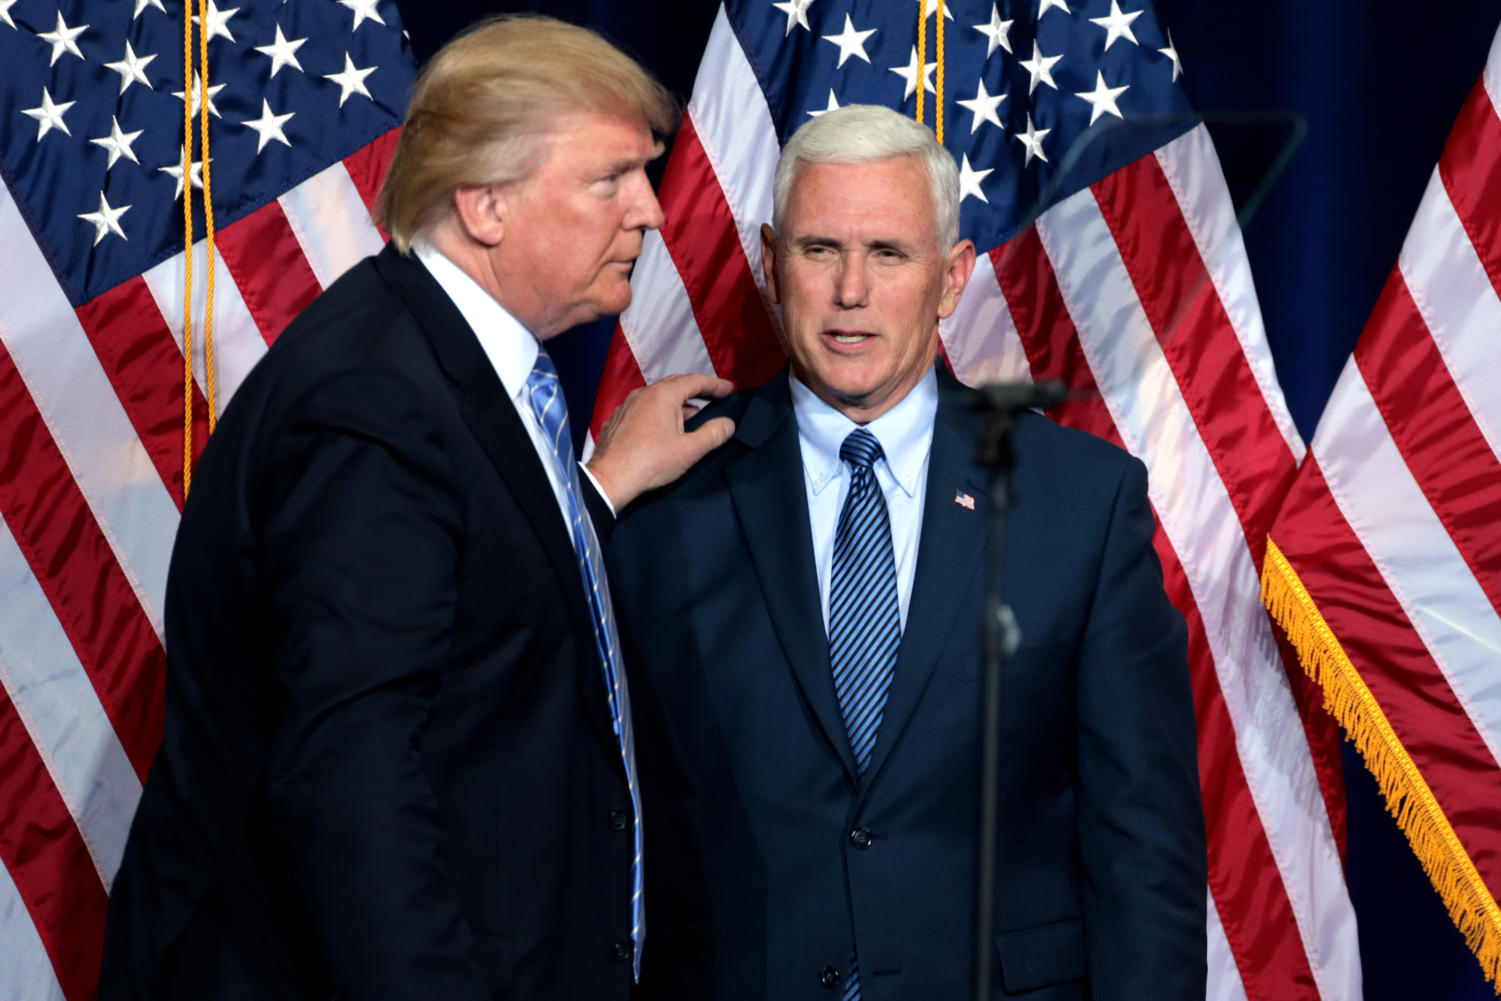 President Donald Trump and Vice President Mike Pence campaign for Republican candidate Mike Braun in his race to unseat Sen. Joe Donnelly.